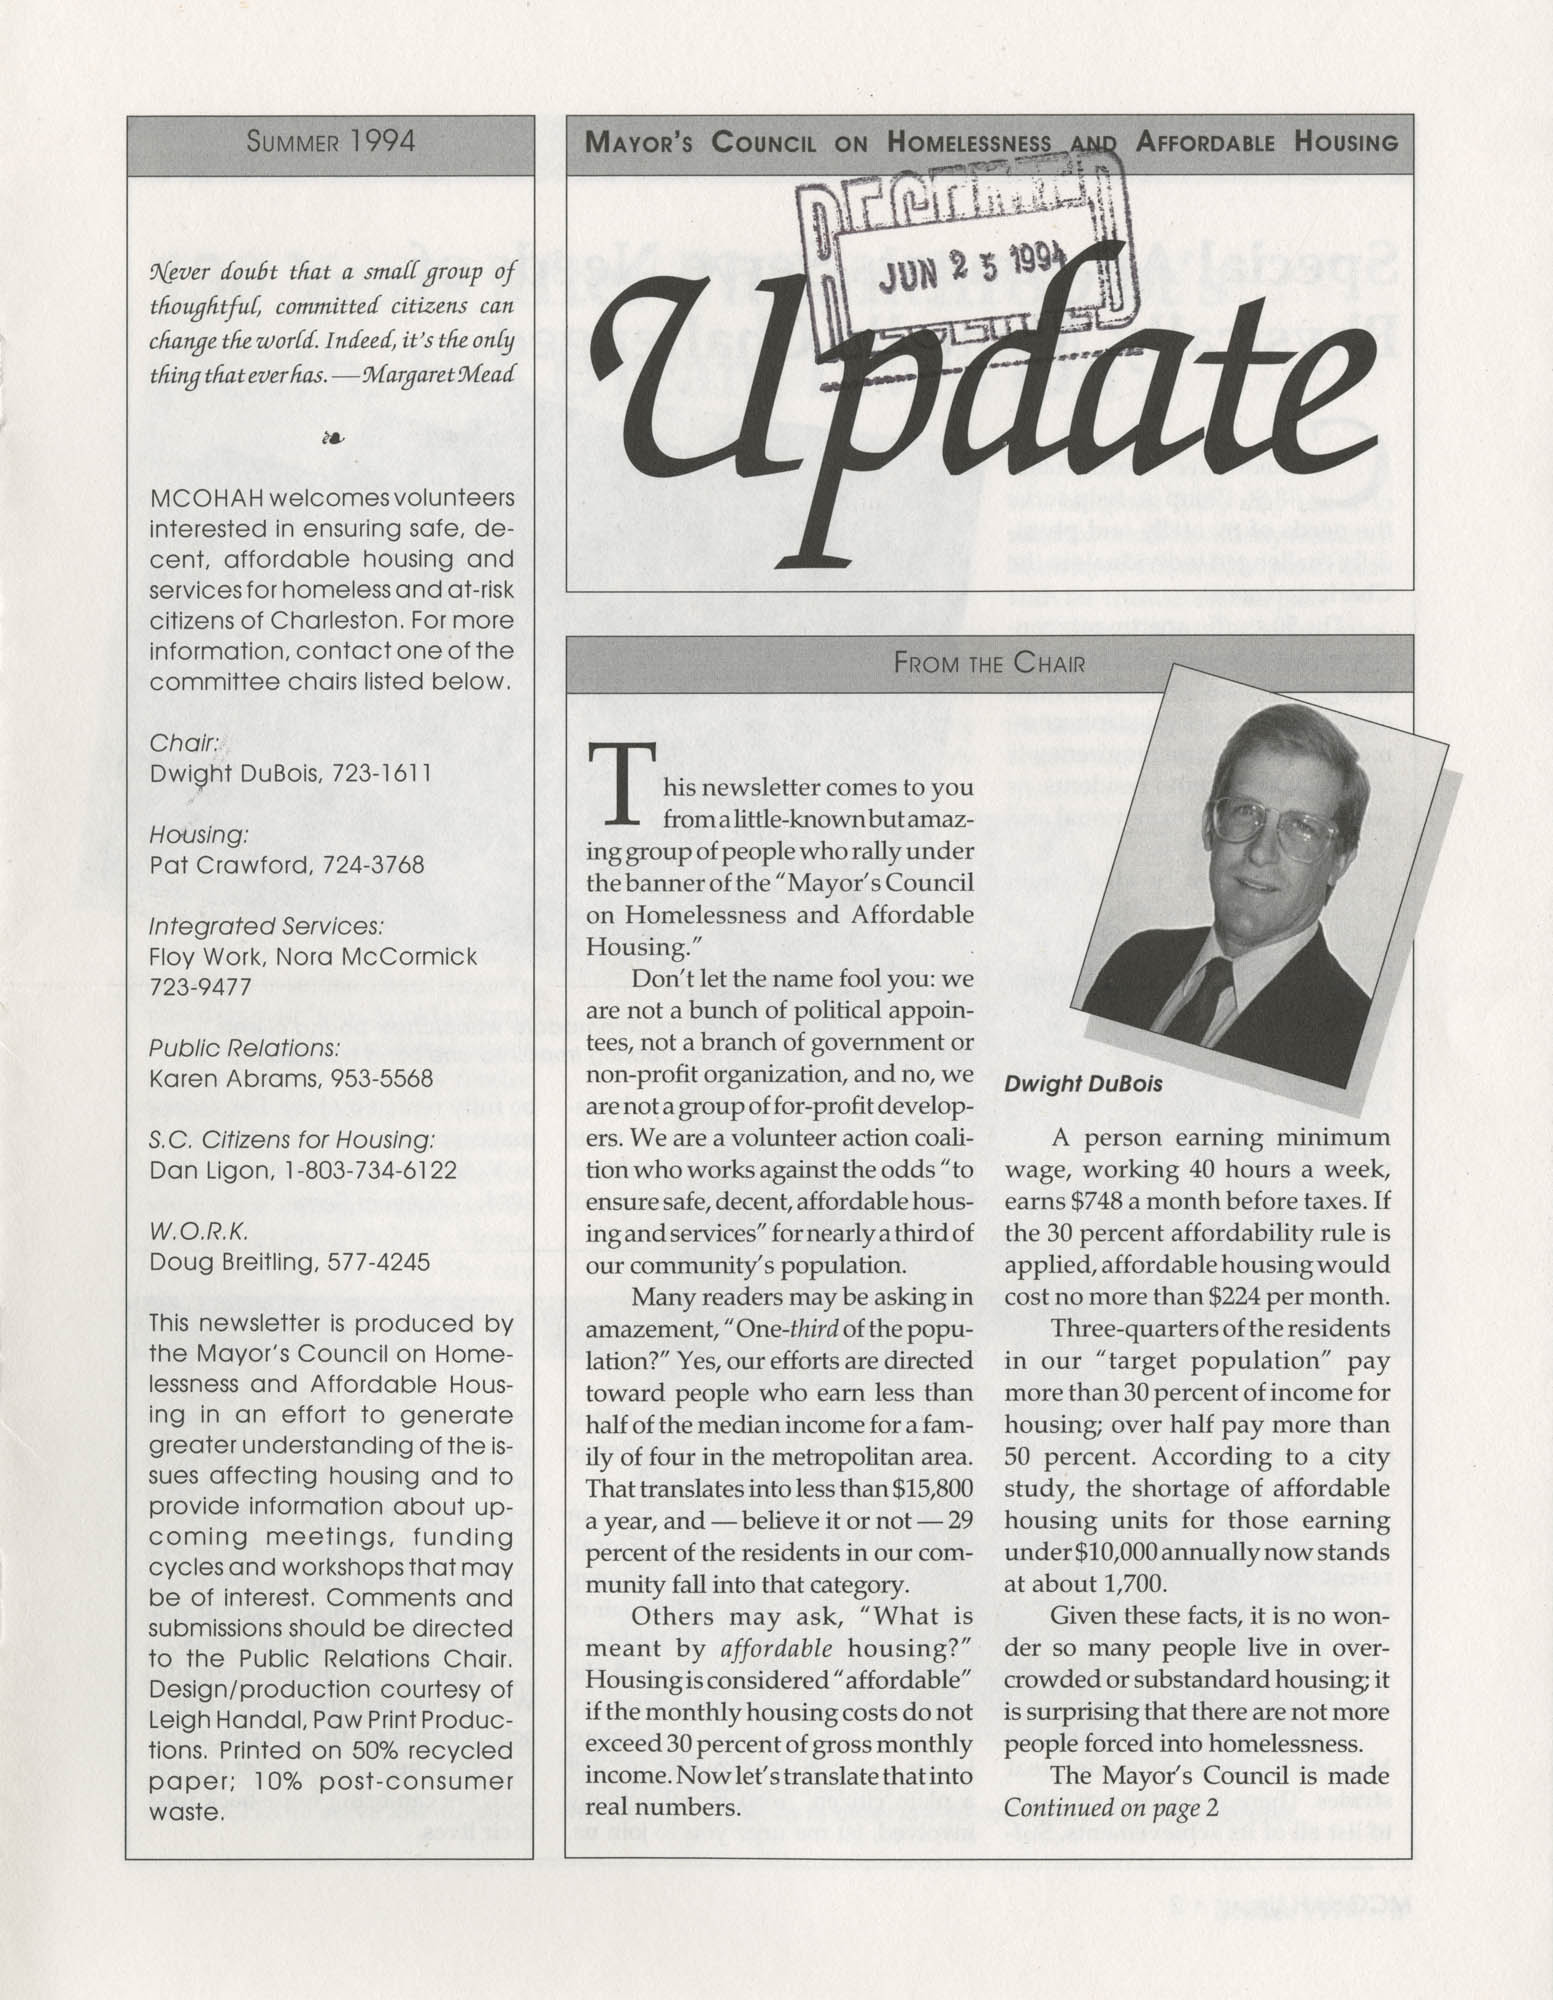 Mayor's Council on Homelessness and Affordable Housing Update Newsletter, Summer 1994